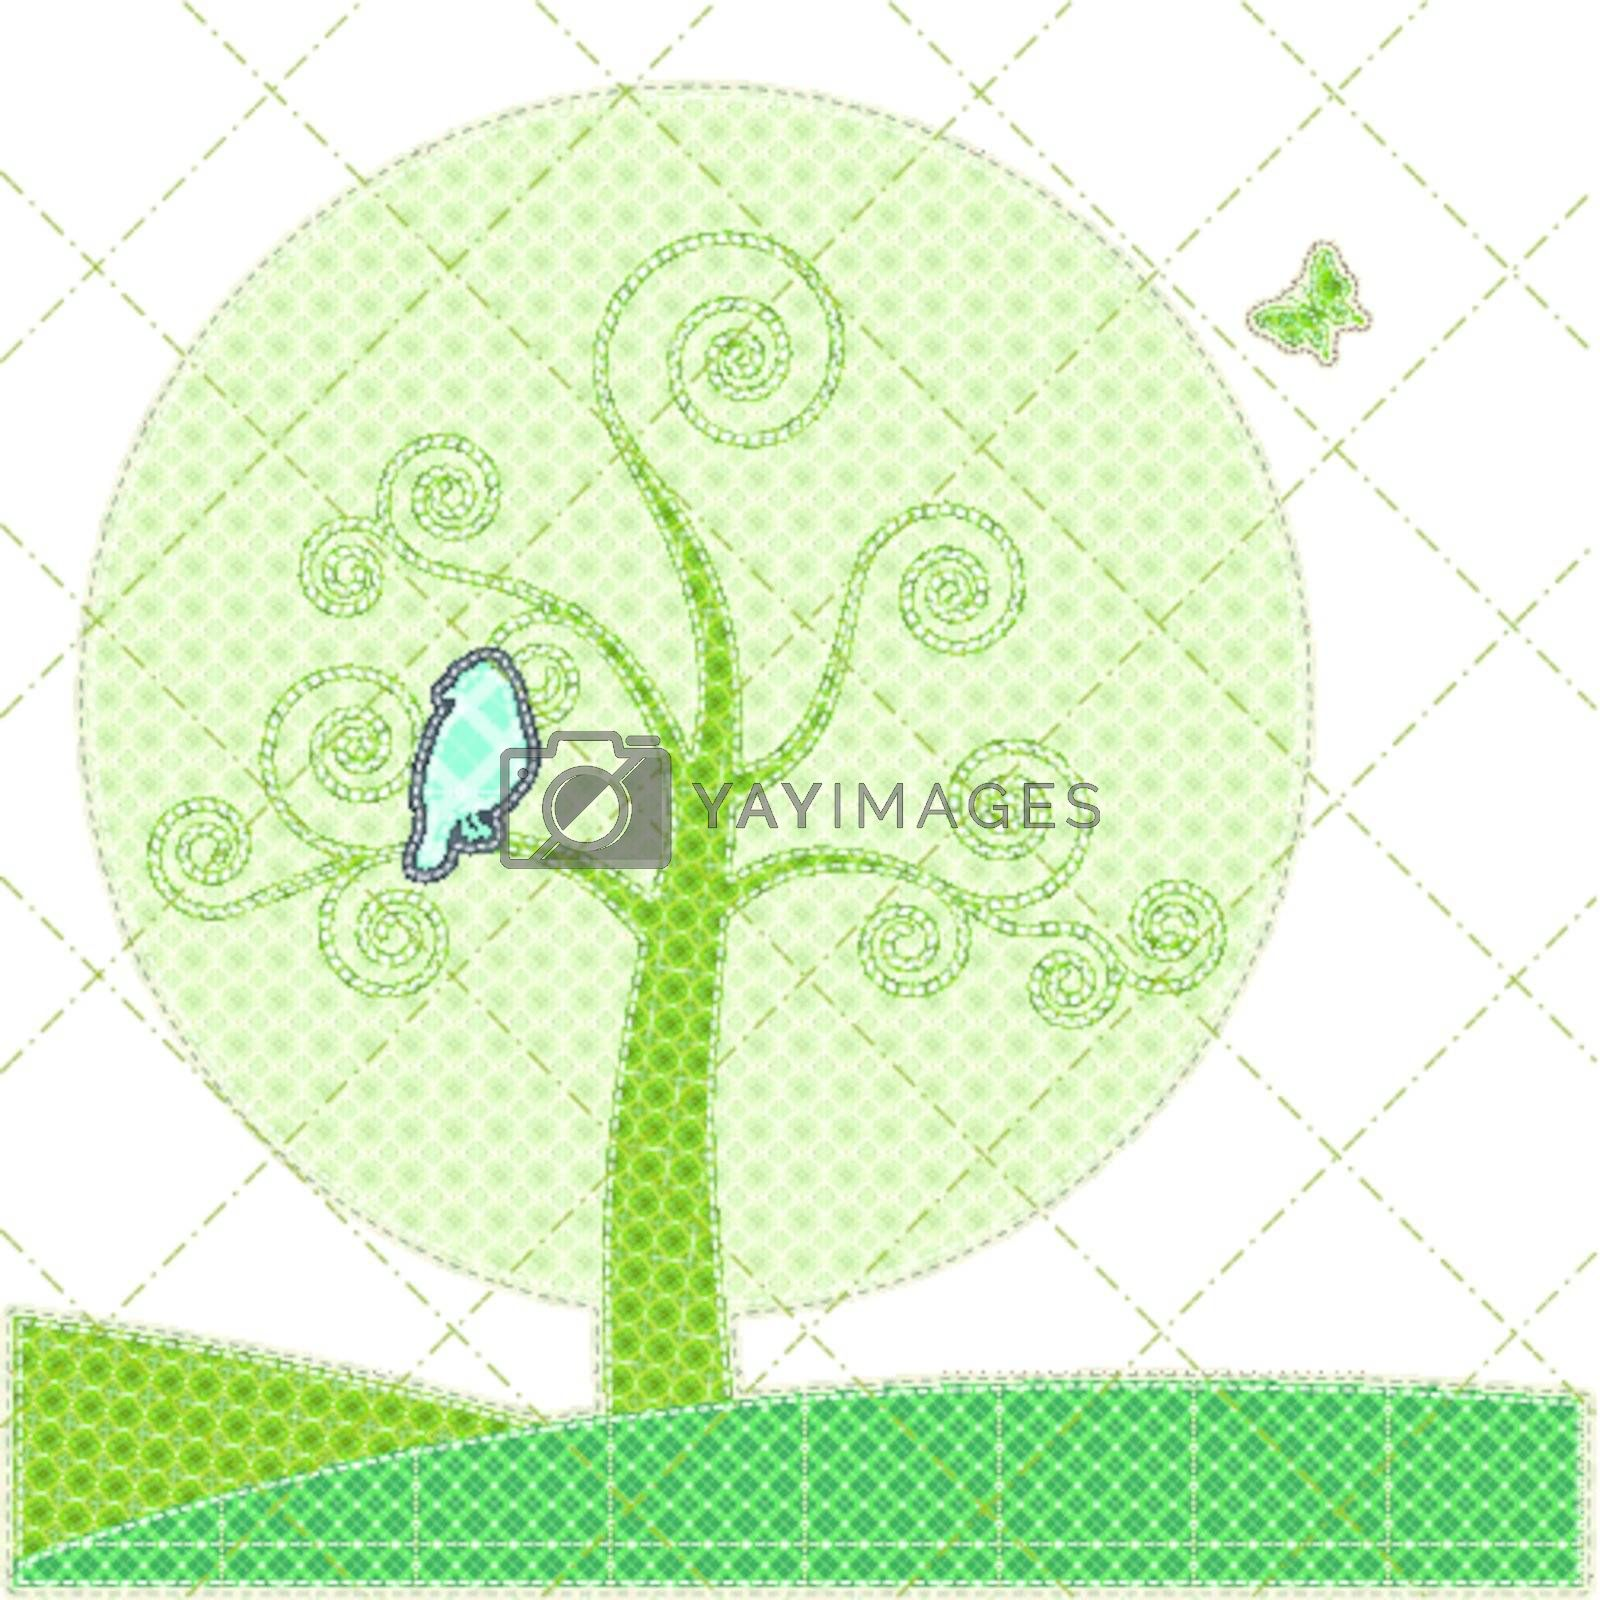 Illustrations patchwork of birthday card with tree and bird